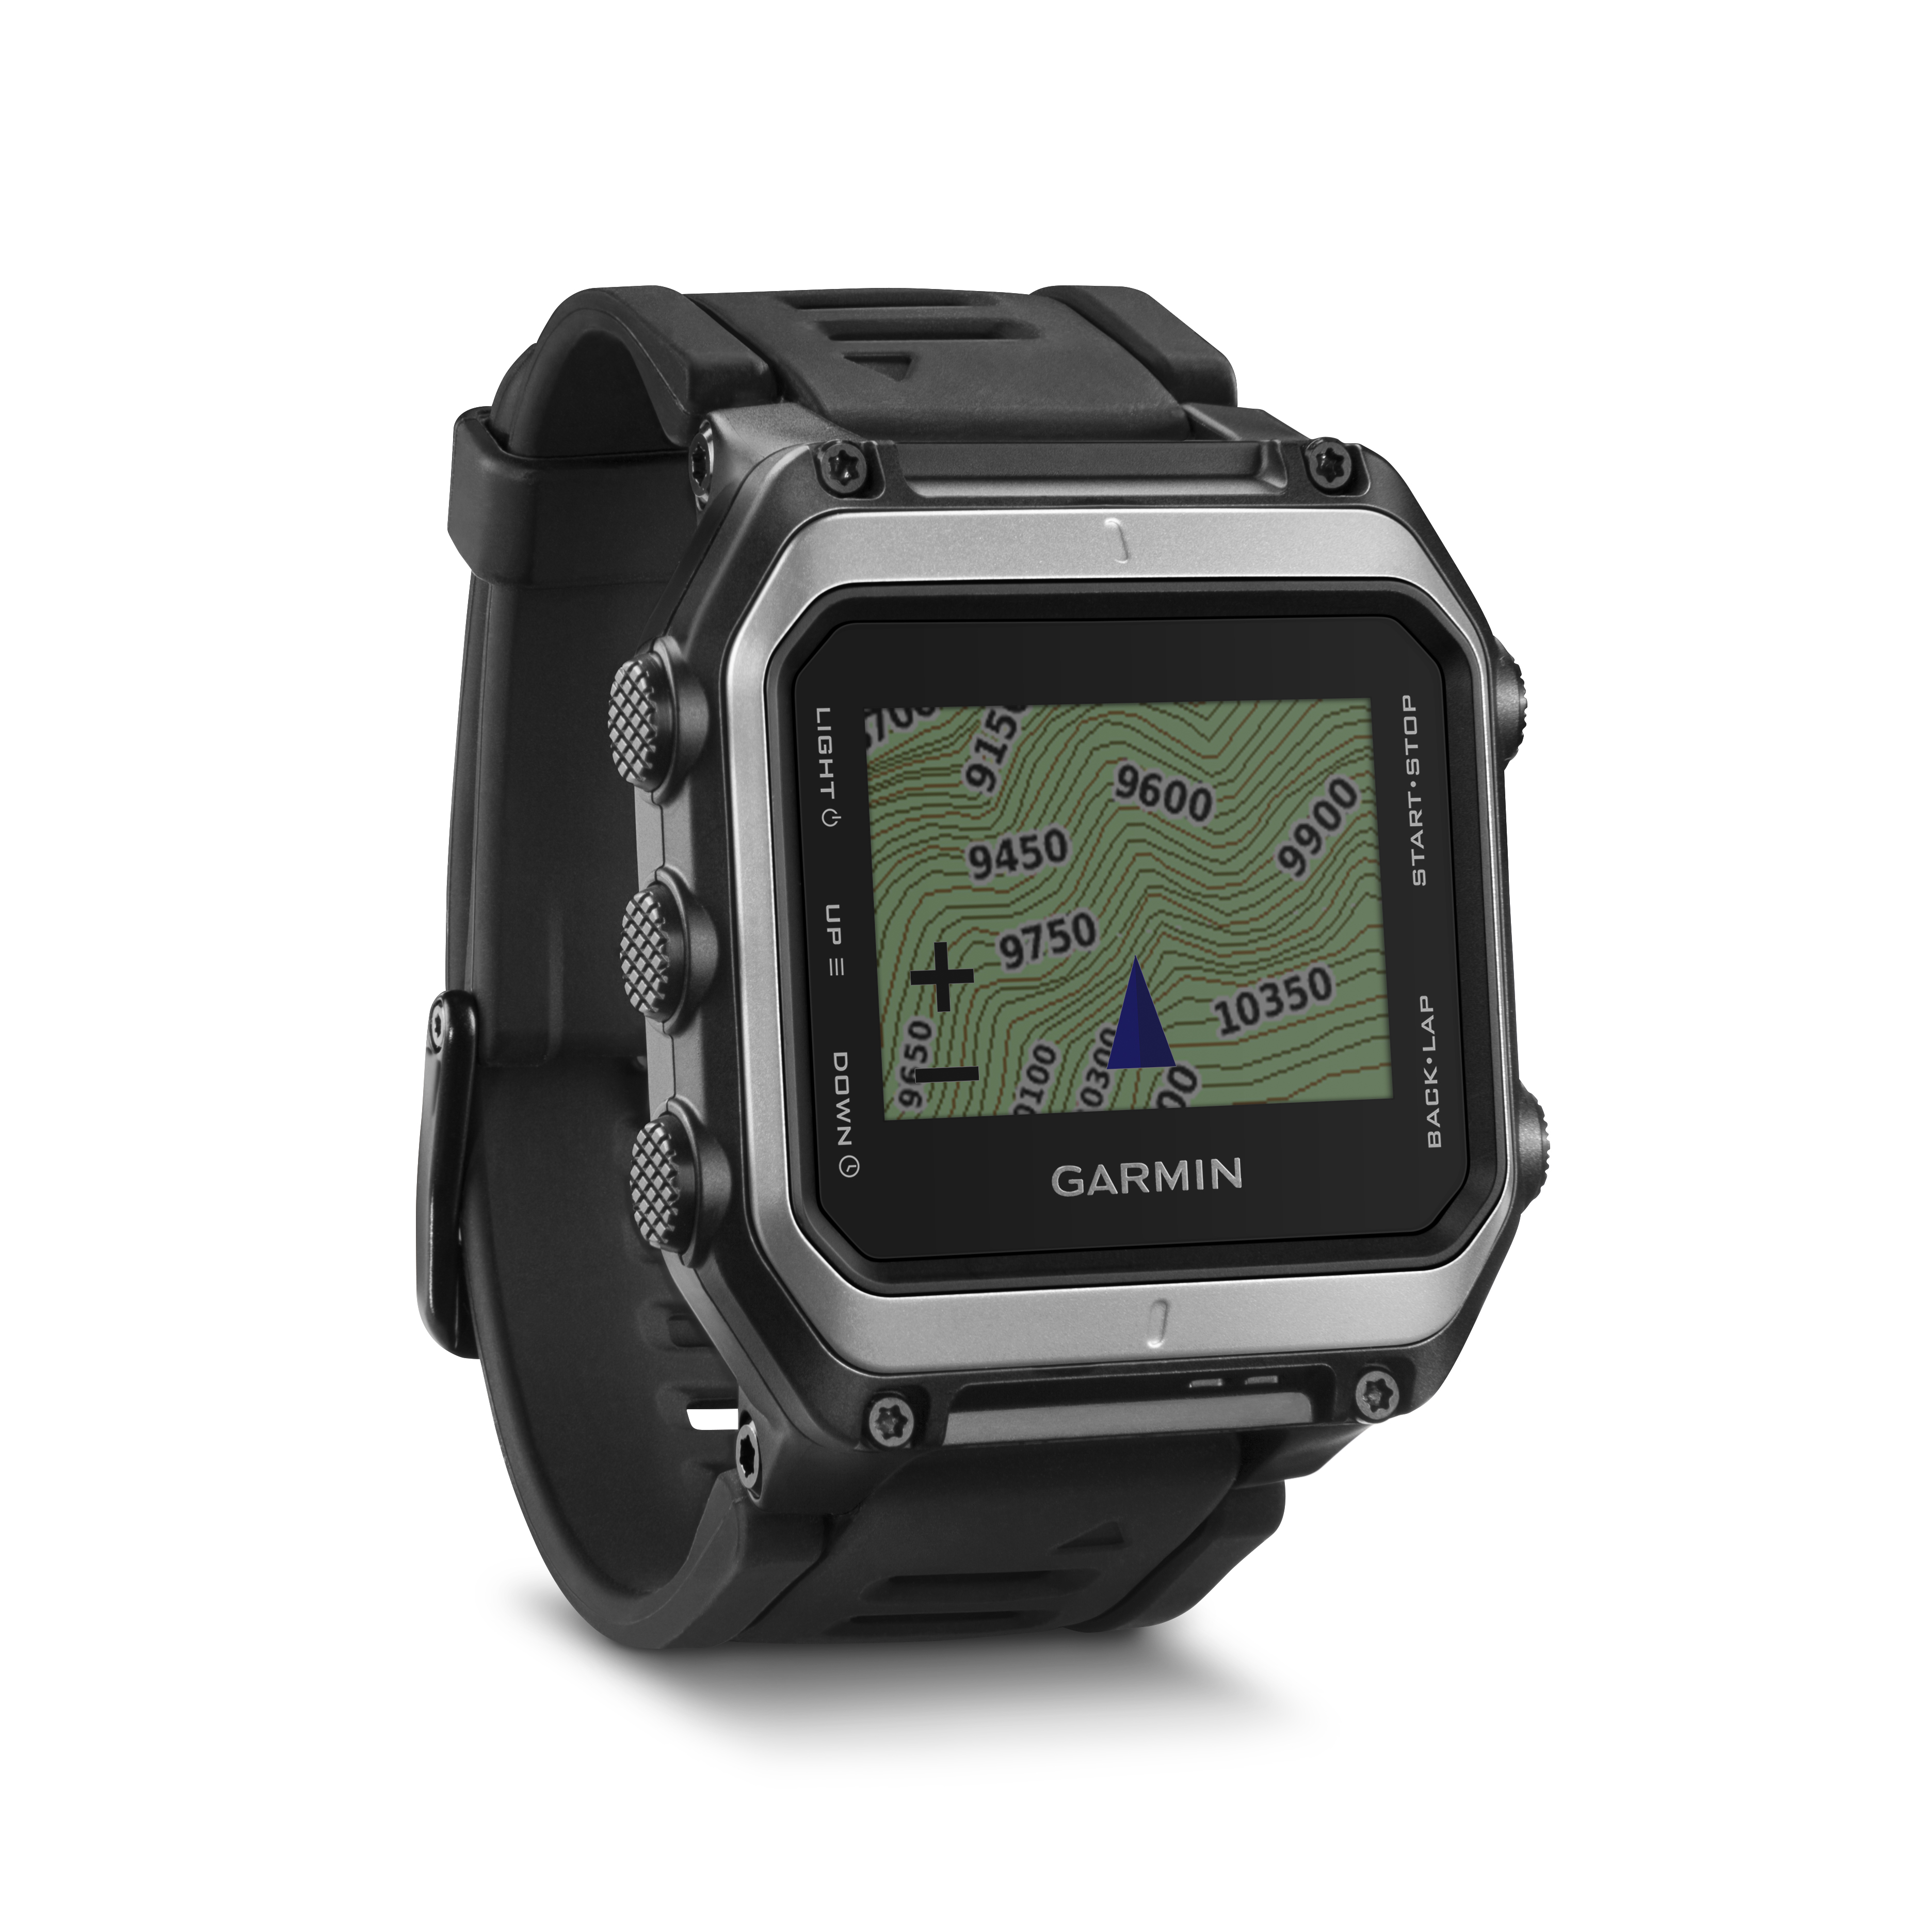 Introducing Garmin® Epix™: The First-of-its-Kind Hands